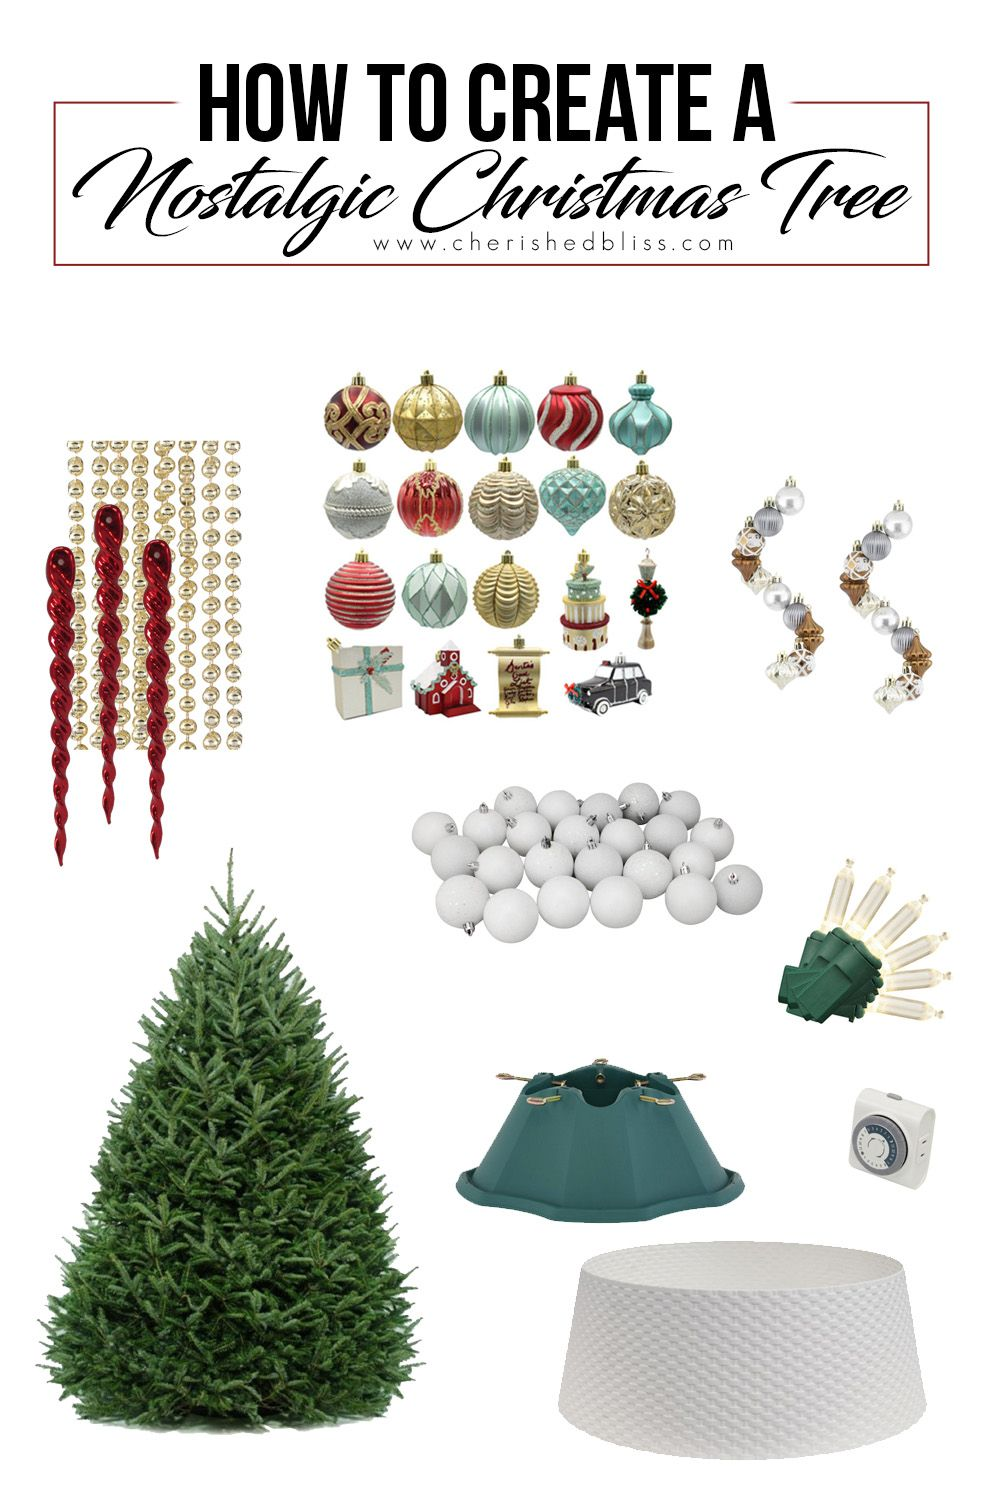 Classic Nostalgic Christmas Tree Cherished Bliss In 2020 Work Diy Cool Diy Projects Christmas Tree Decorations